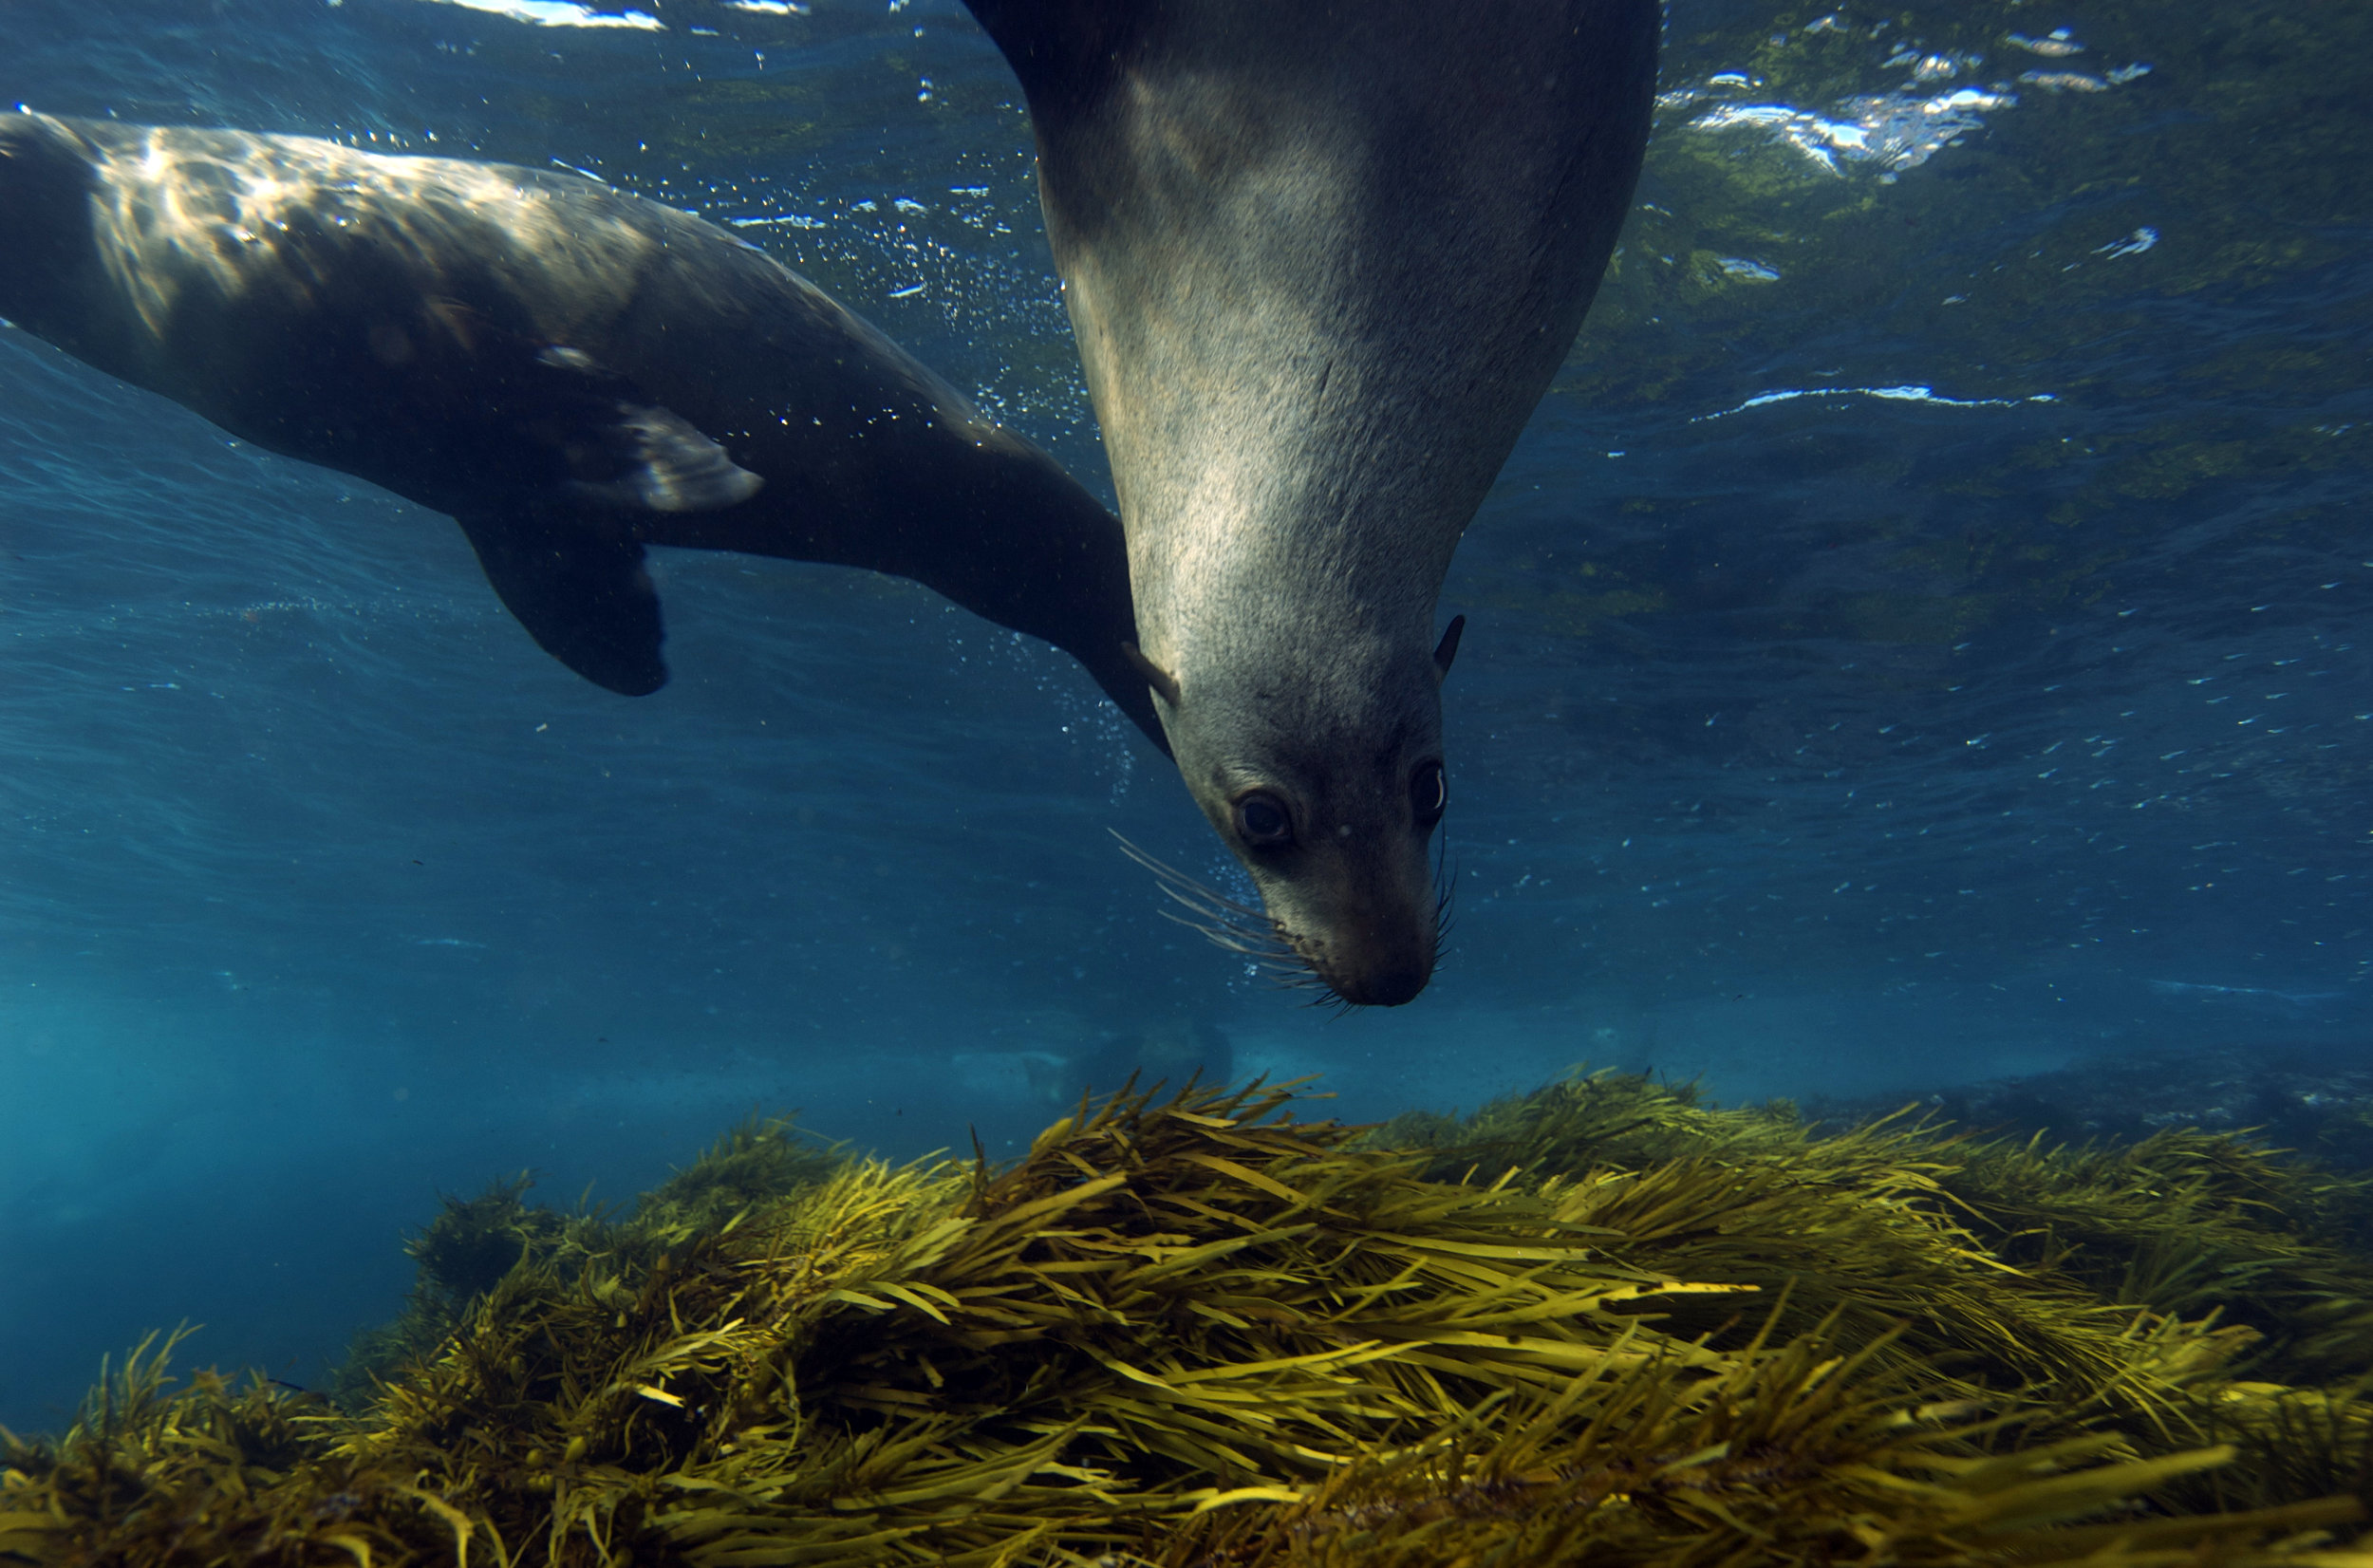 GALAPAGOS SEA LIONS CREDIT: THE OCEAN AGENCY / coral reef image bank